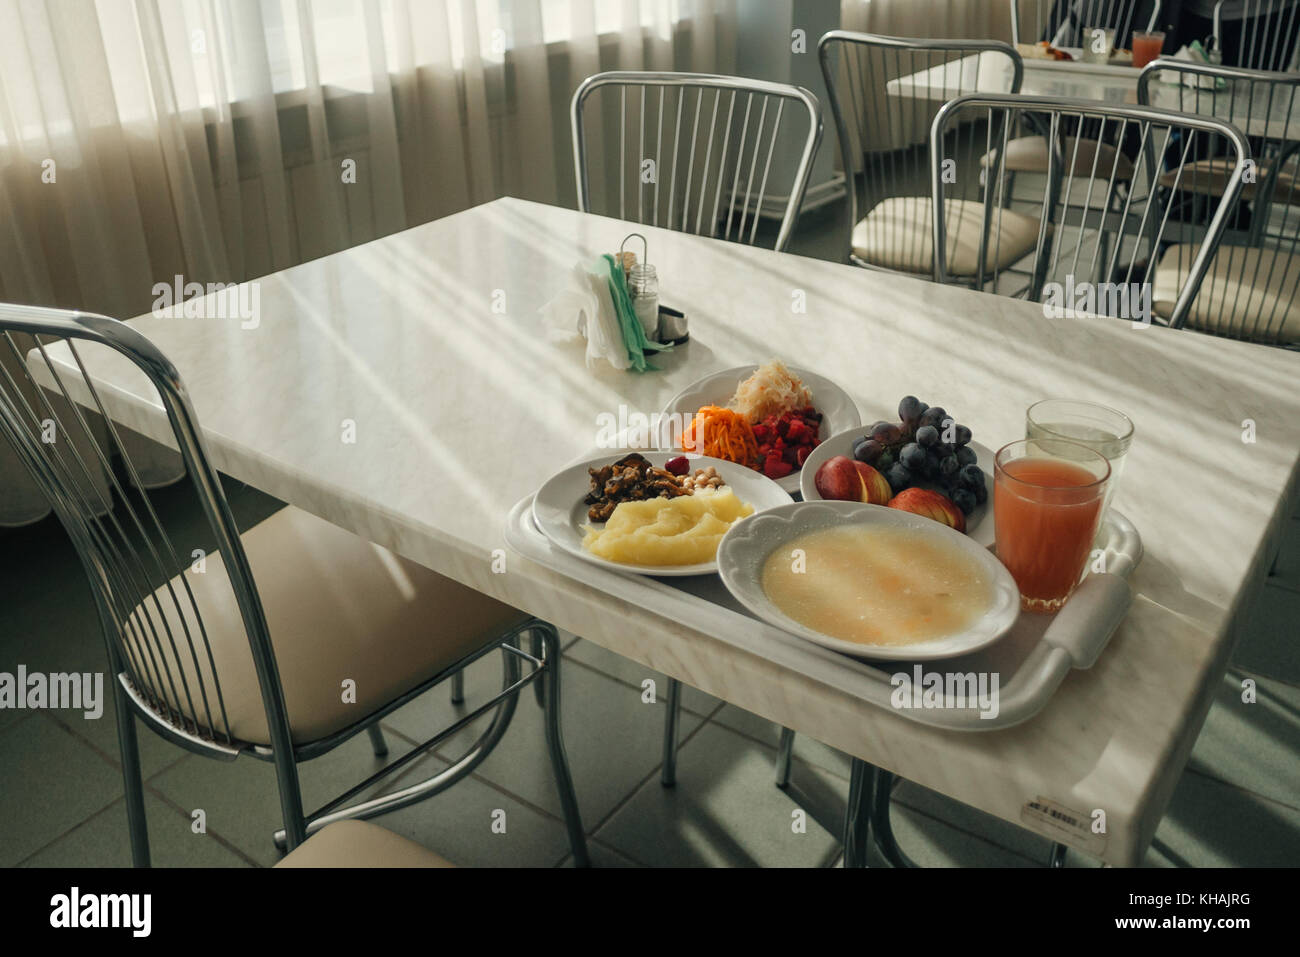 A tray of vegetarian food in the staff canteen at Chernobyl power plant, Ukraine - Stock Image